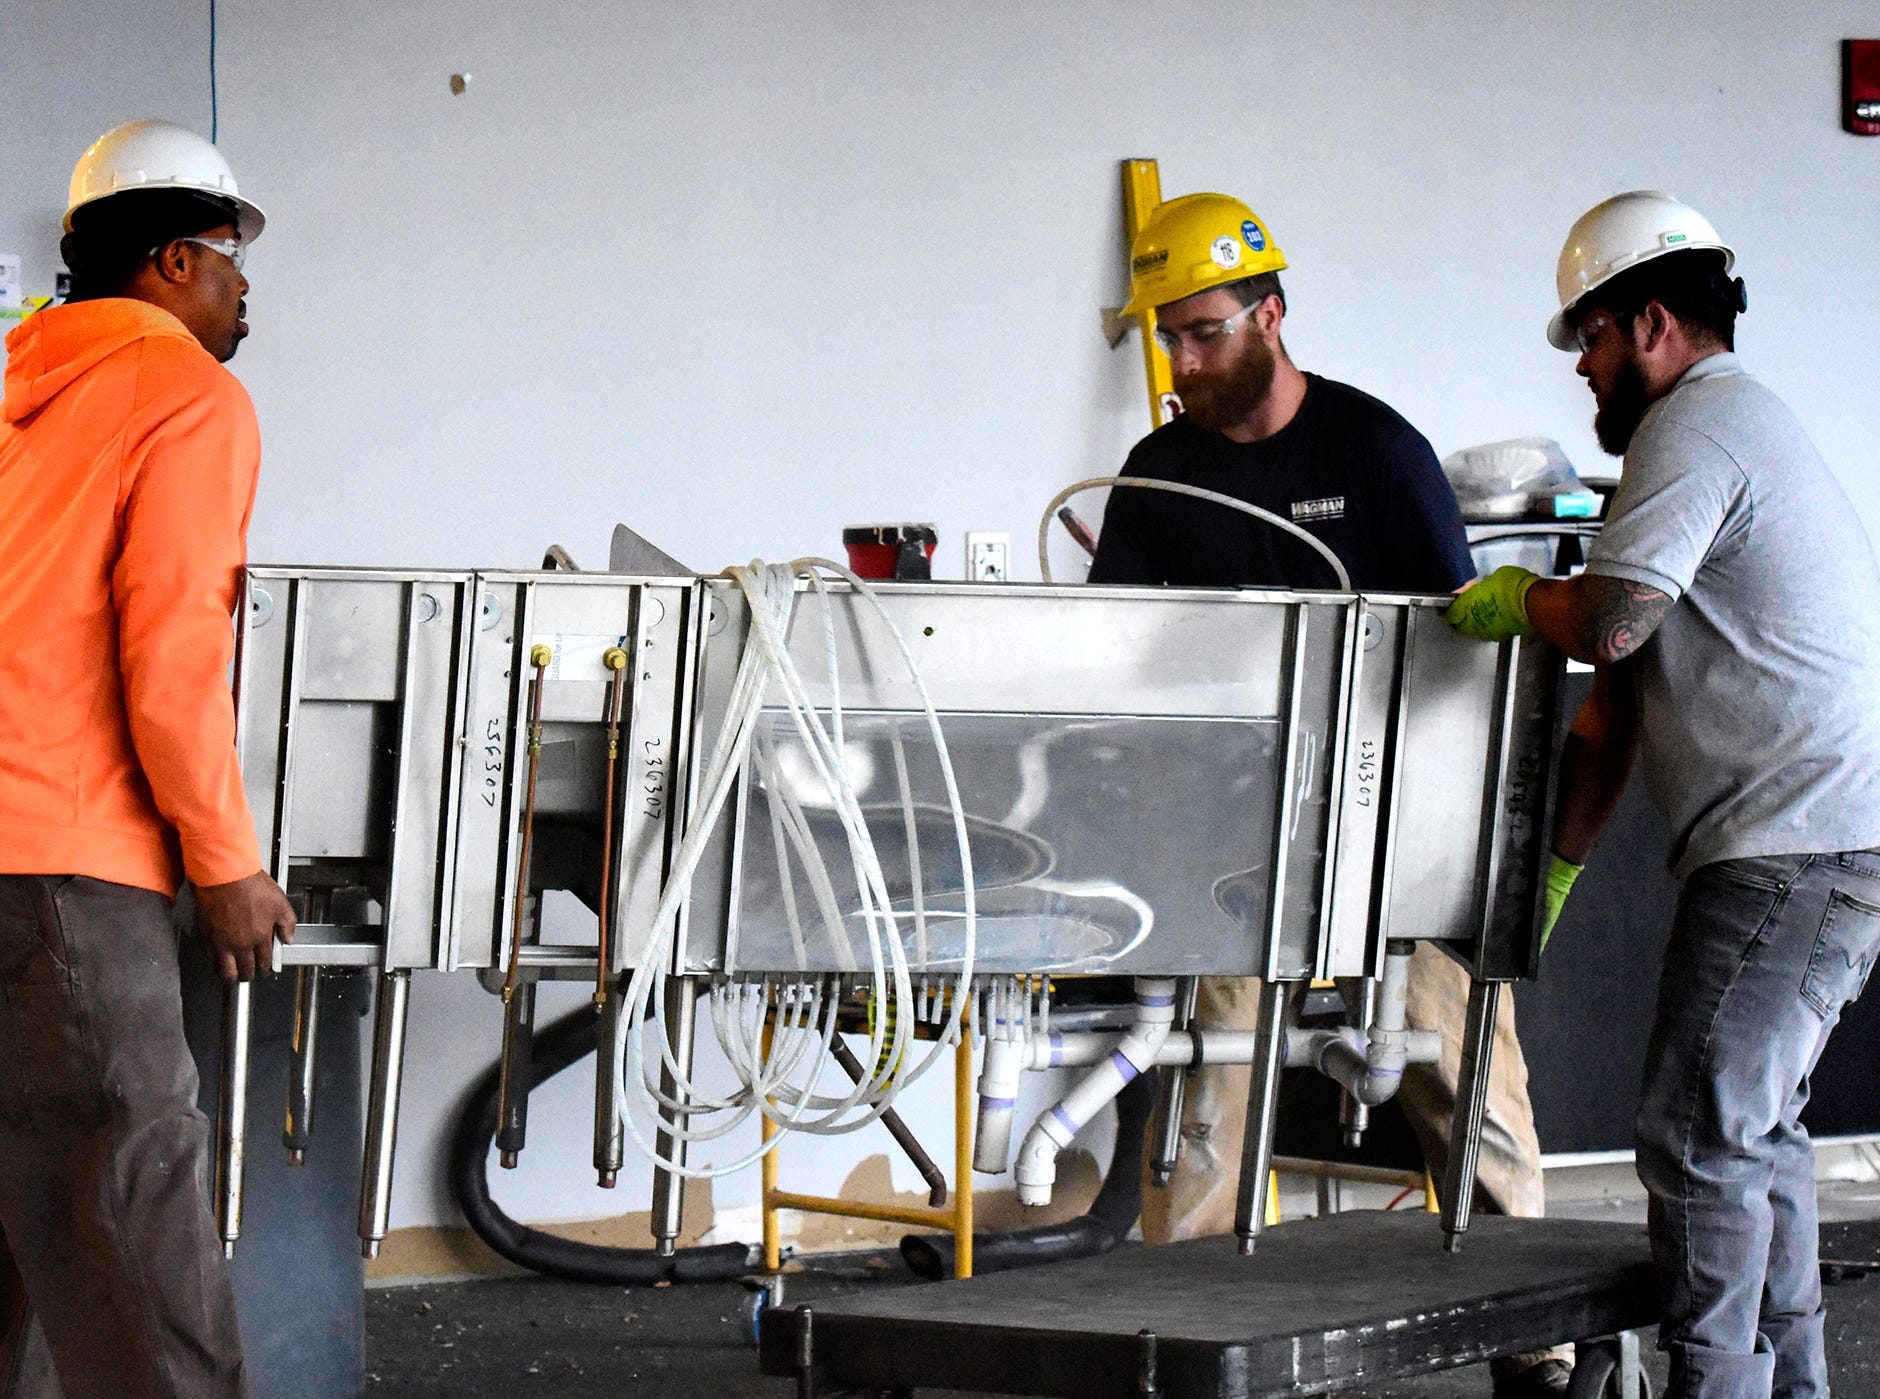 Wagman Construction workers, from left, Kenneth Autry, Jr, Brandon Girard and C.J, Fitch move a bar feature while clearing the former White Room at PeoplesBank Park Friday, Nov. 9, 2018. The room will house the 1741 Club starting in the 2019 season.  Bill Kalina photo